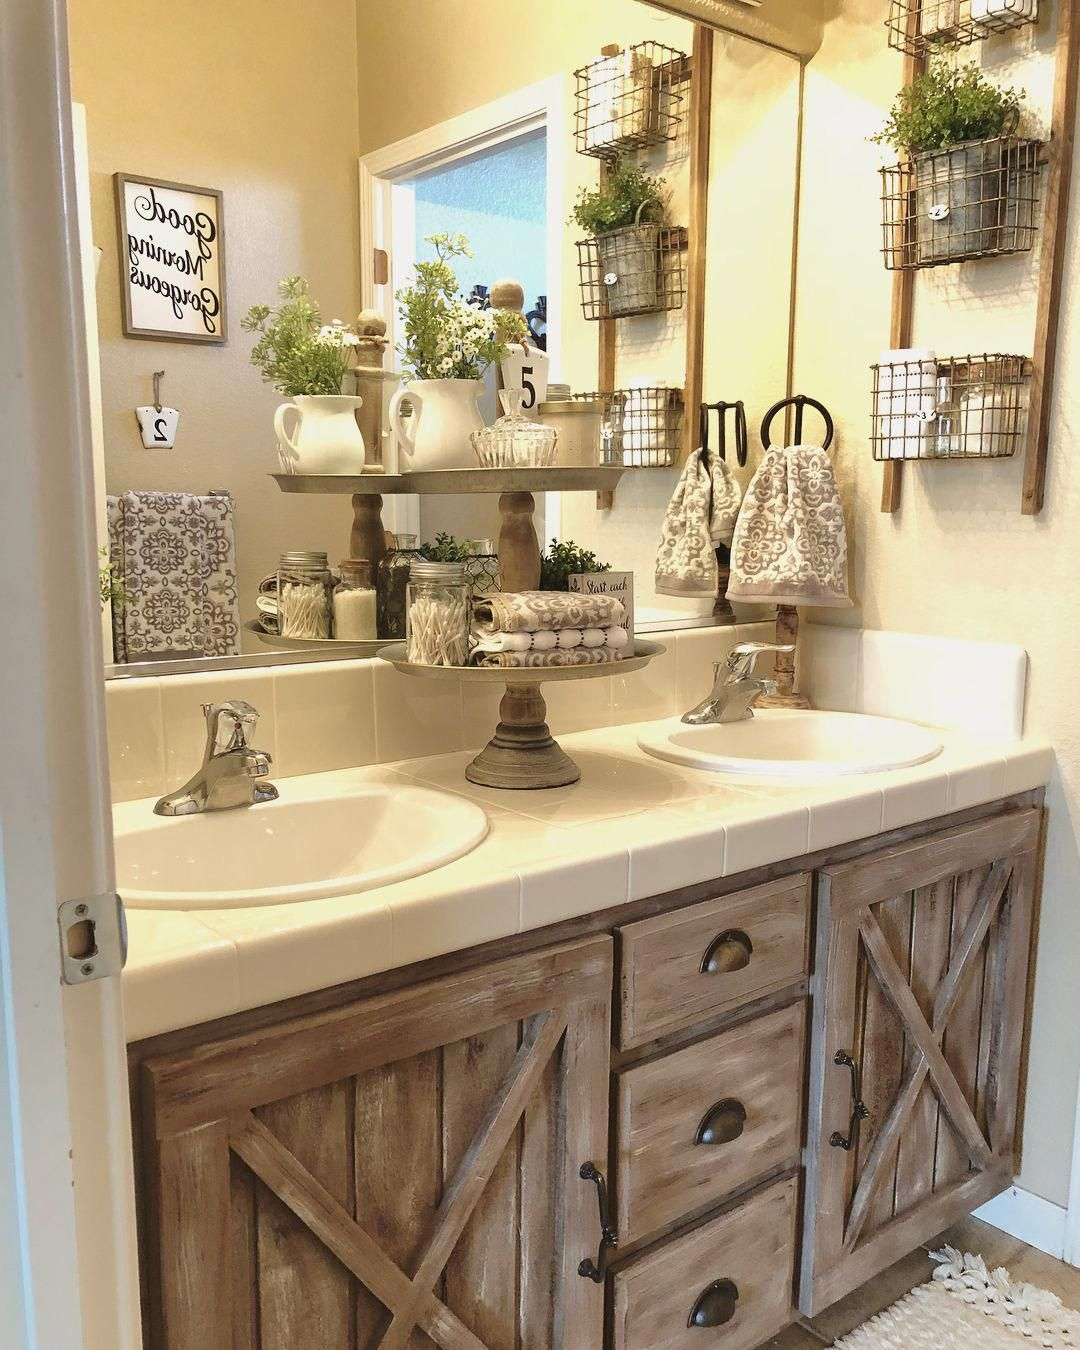 Decoratingthebathroom Beautiful Bathroom Decor Farmhouse Bathroom Decor Bathroom Decor